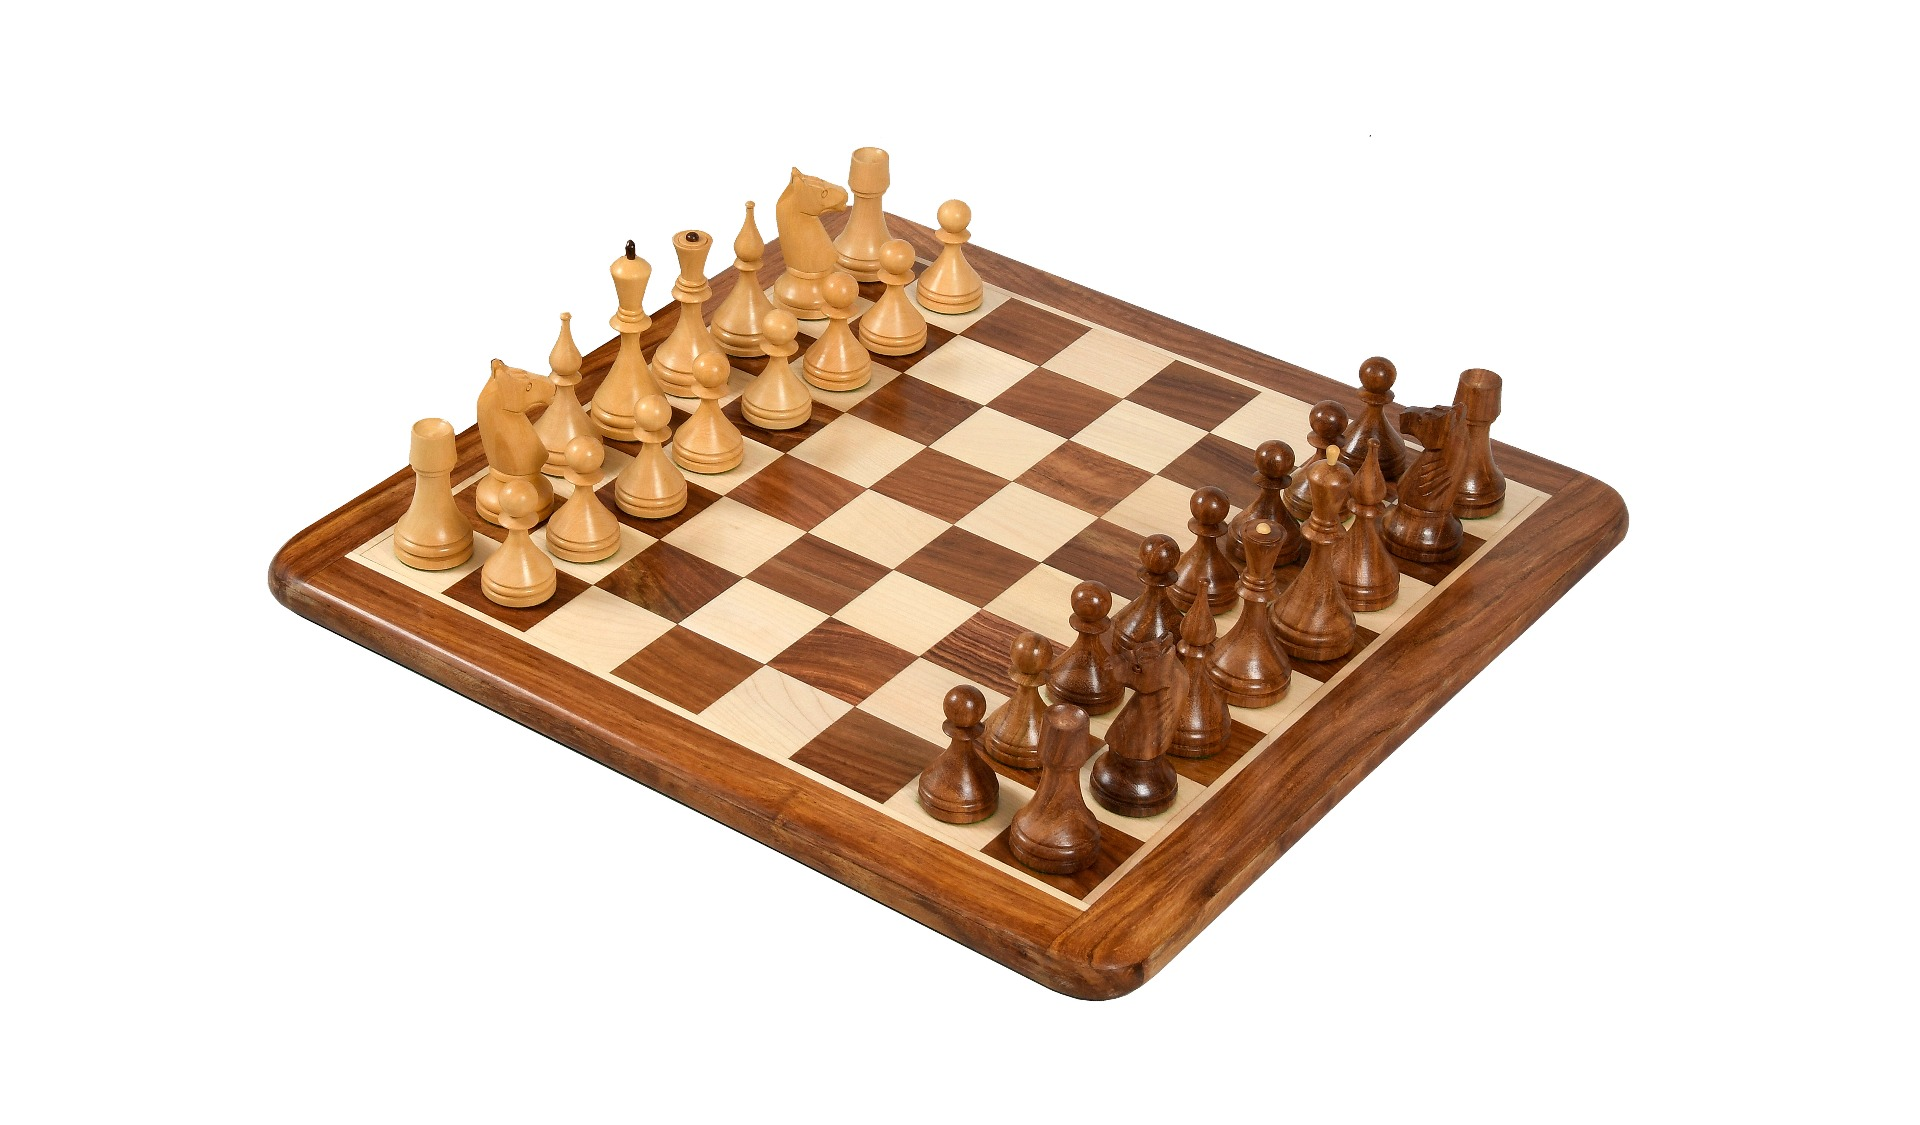 """Combo of Reproduced 1961 Soviet Championship Baku Chess Pieces & Wooden Chess Board in Sheesham / Box wood - 4"""" King"""